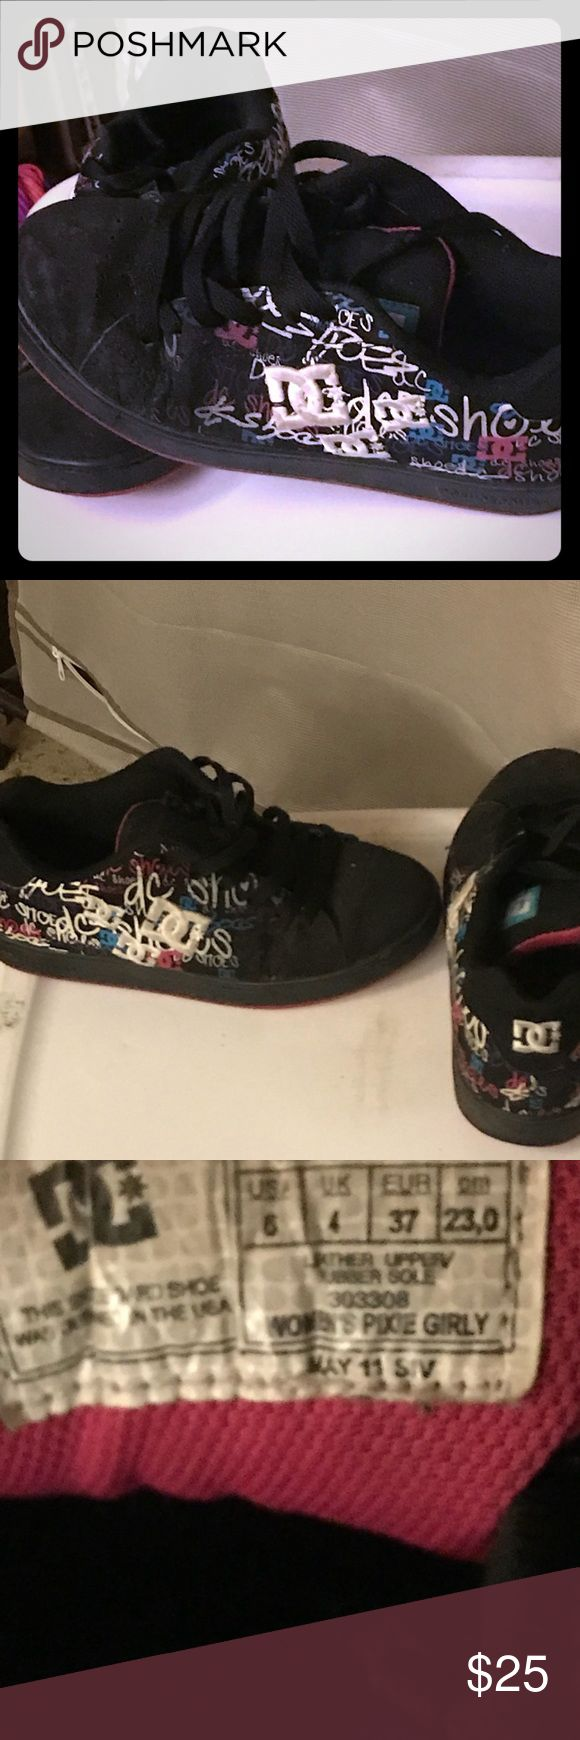 Dc sneaker Dc sneaker size 6 women's worn a few times been In storage so they are a little dusty in the picture but assure you they will be clean when shipped DC Shoes Sneakers